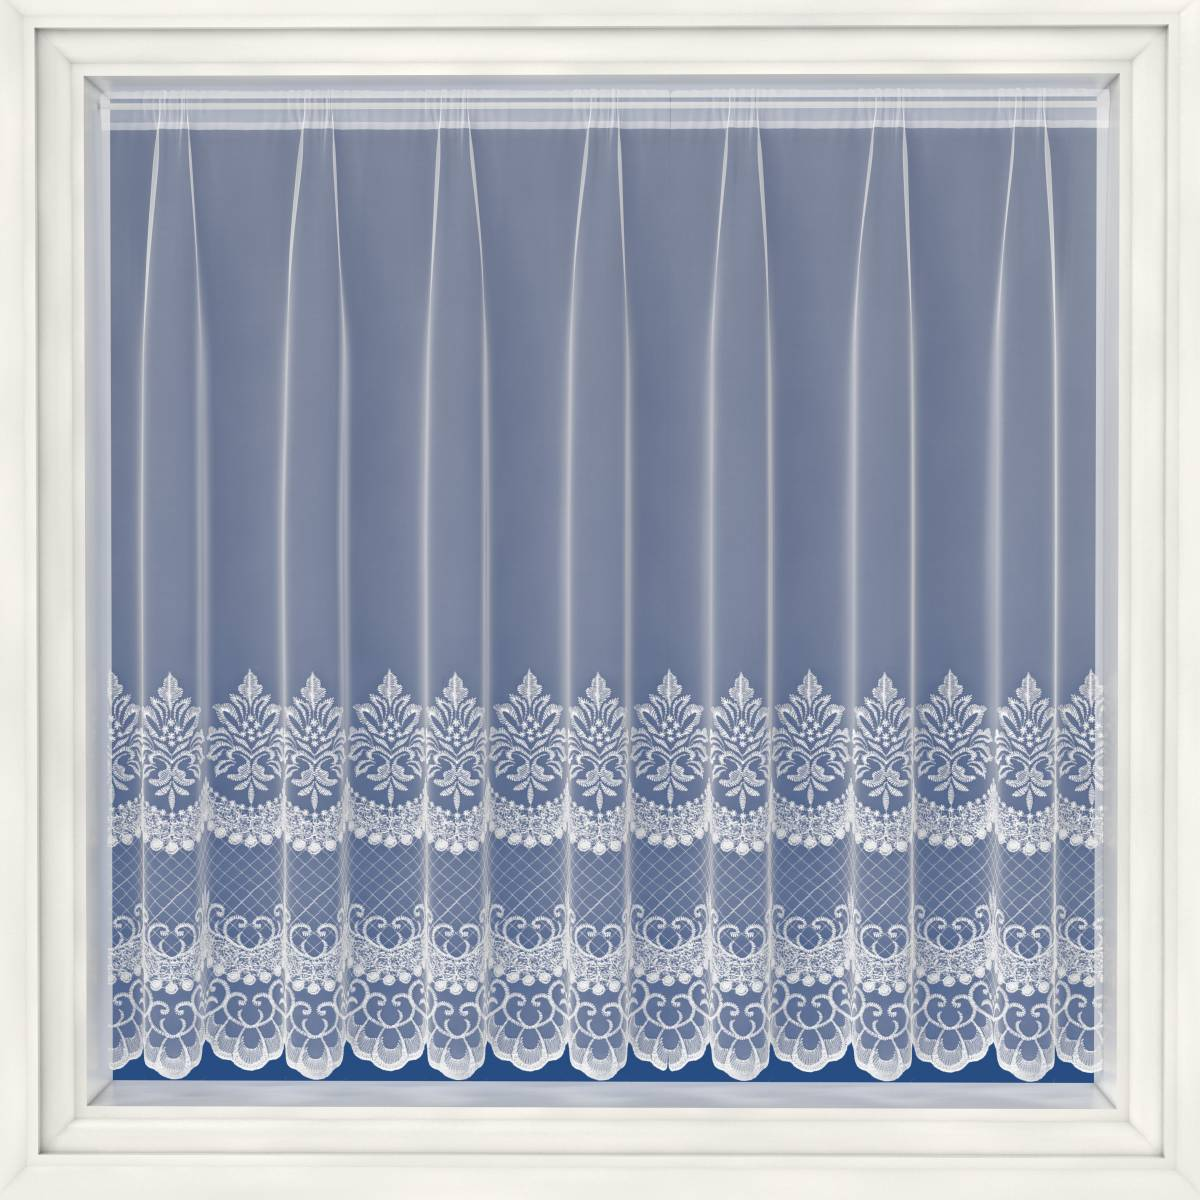 Cambridge White Embroidered Voile Net Curtain Net Curtain 2 Curtains